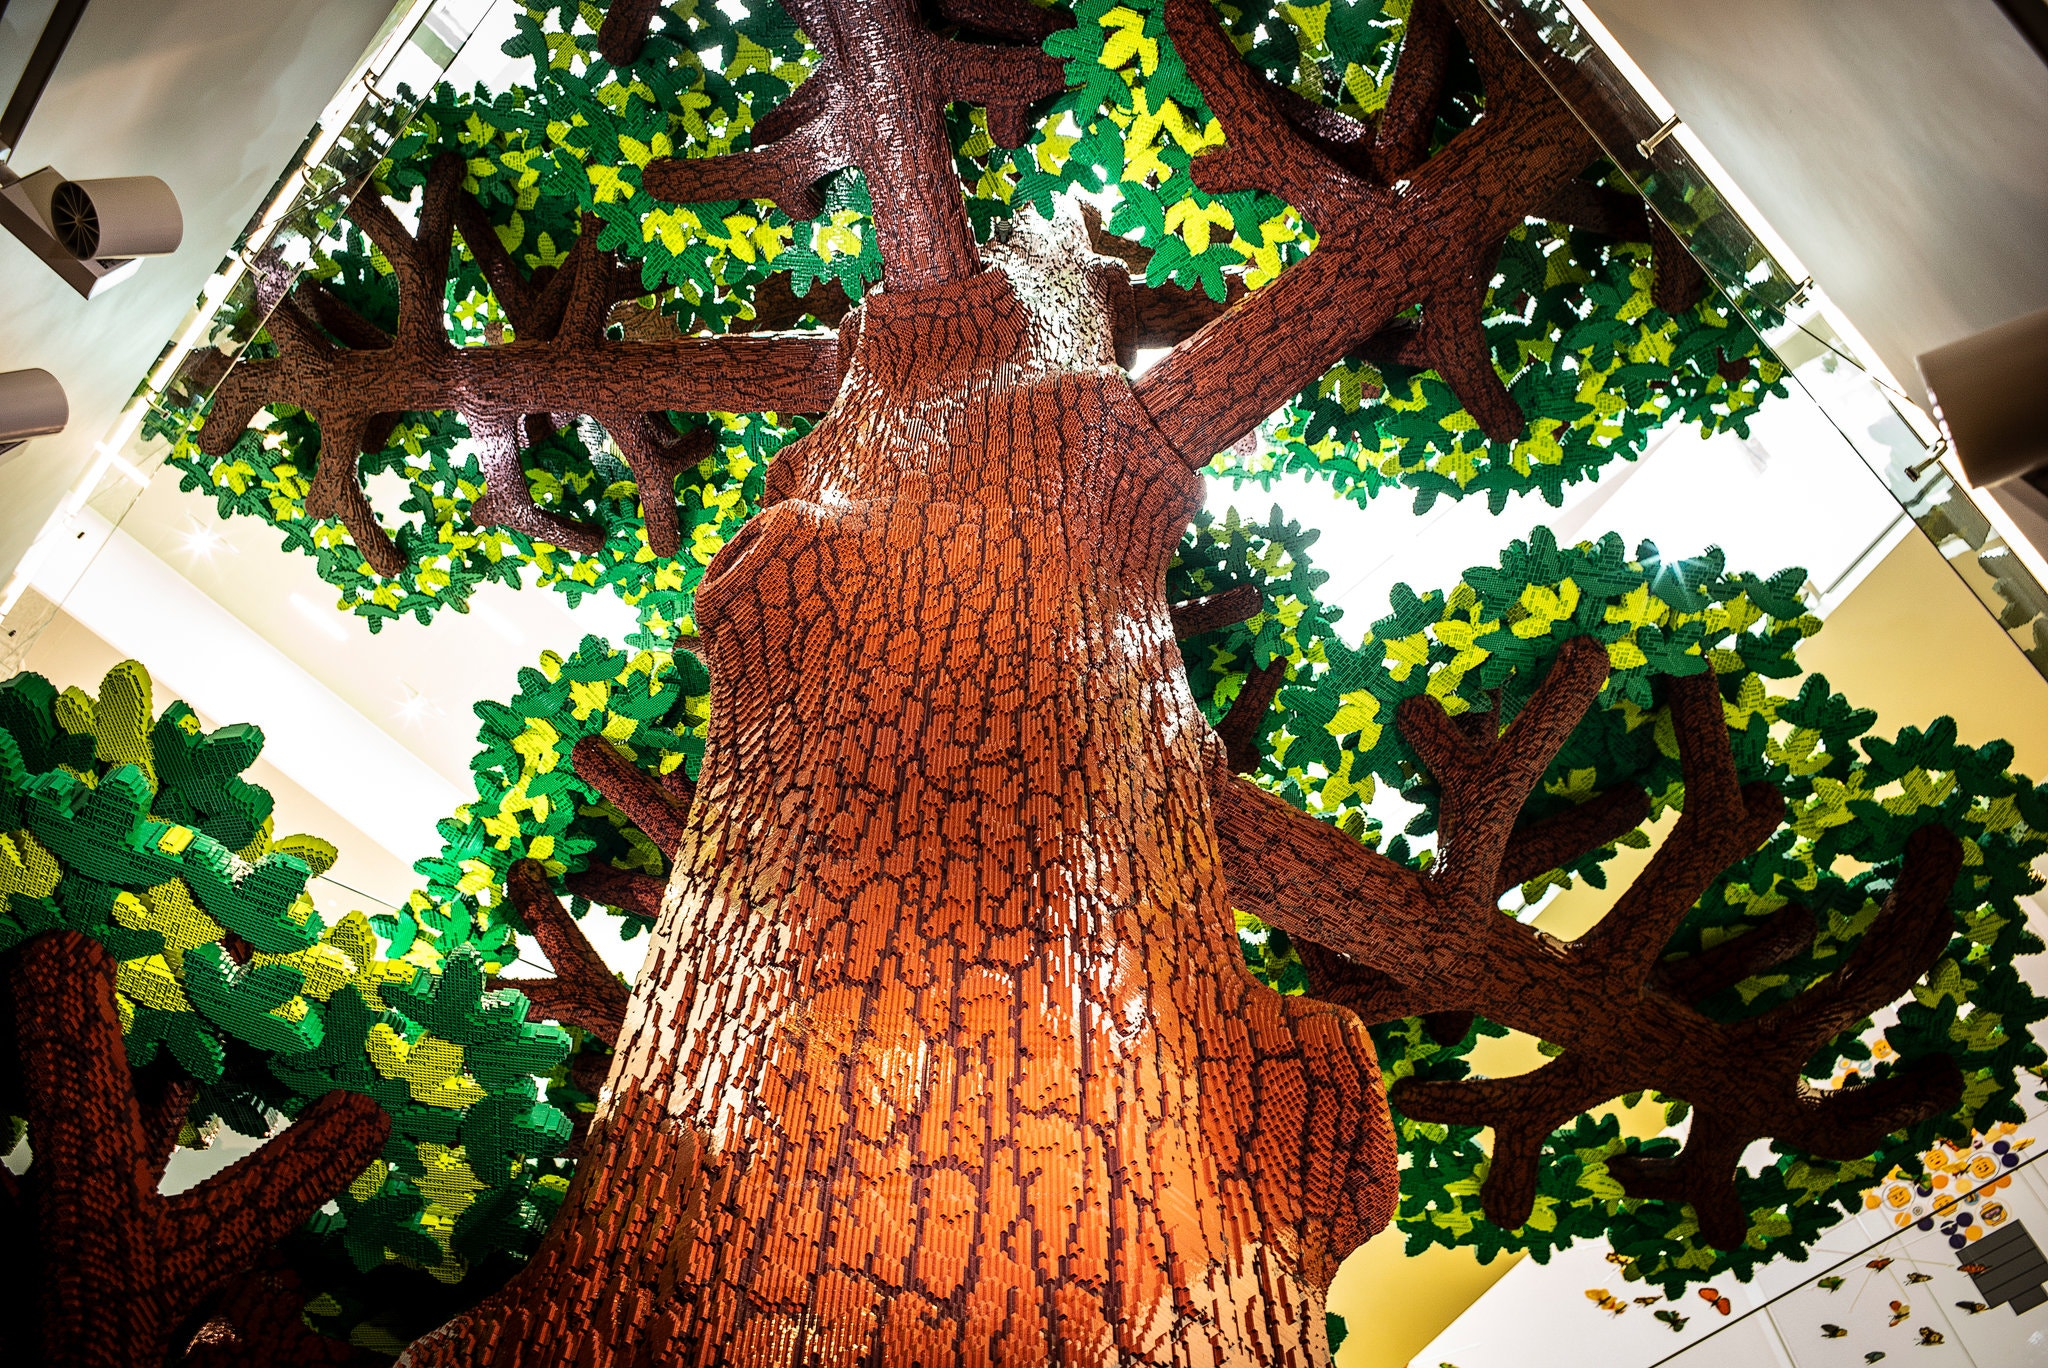 A massive semi-realistic tree built entirely of LEGO bricks, seen from an on-the-ground vantage point.